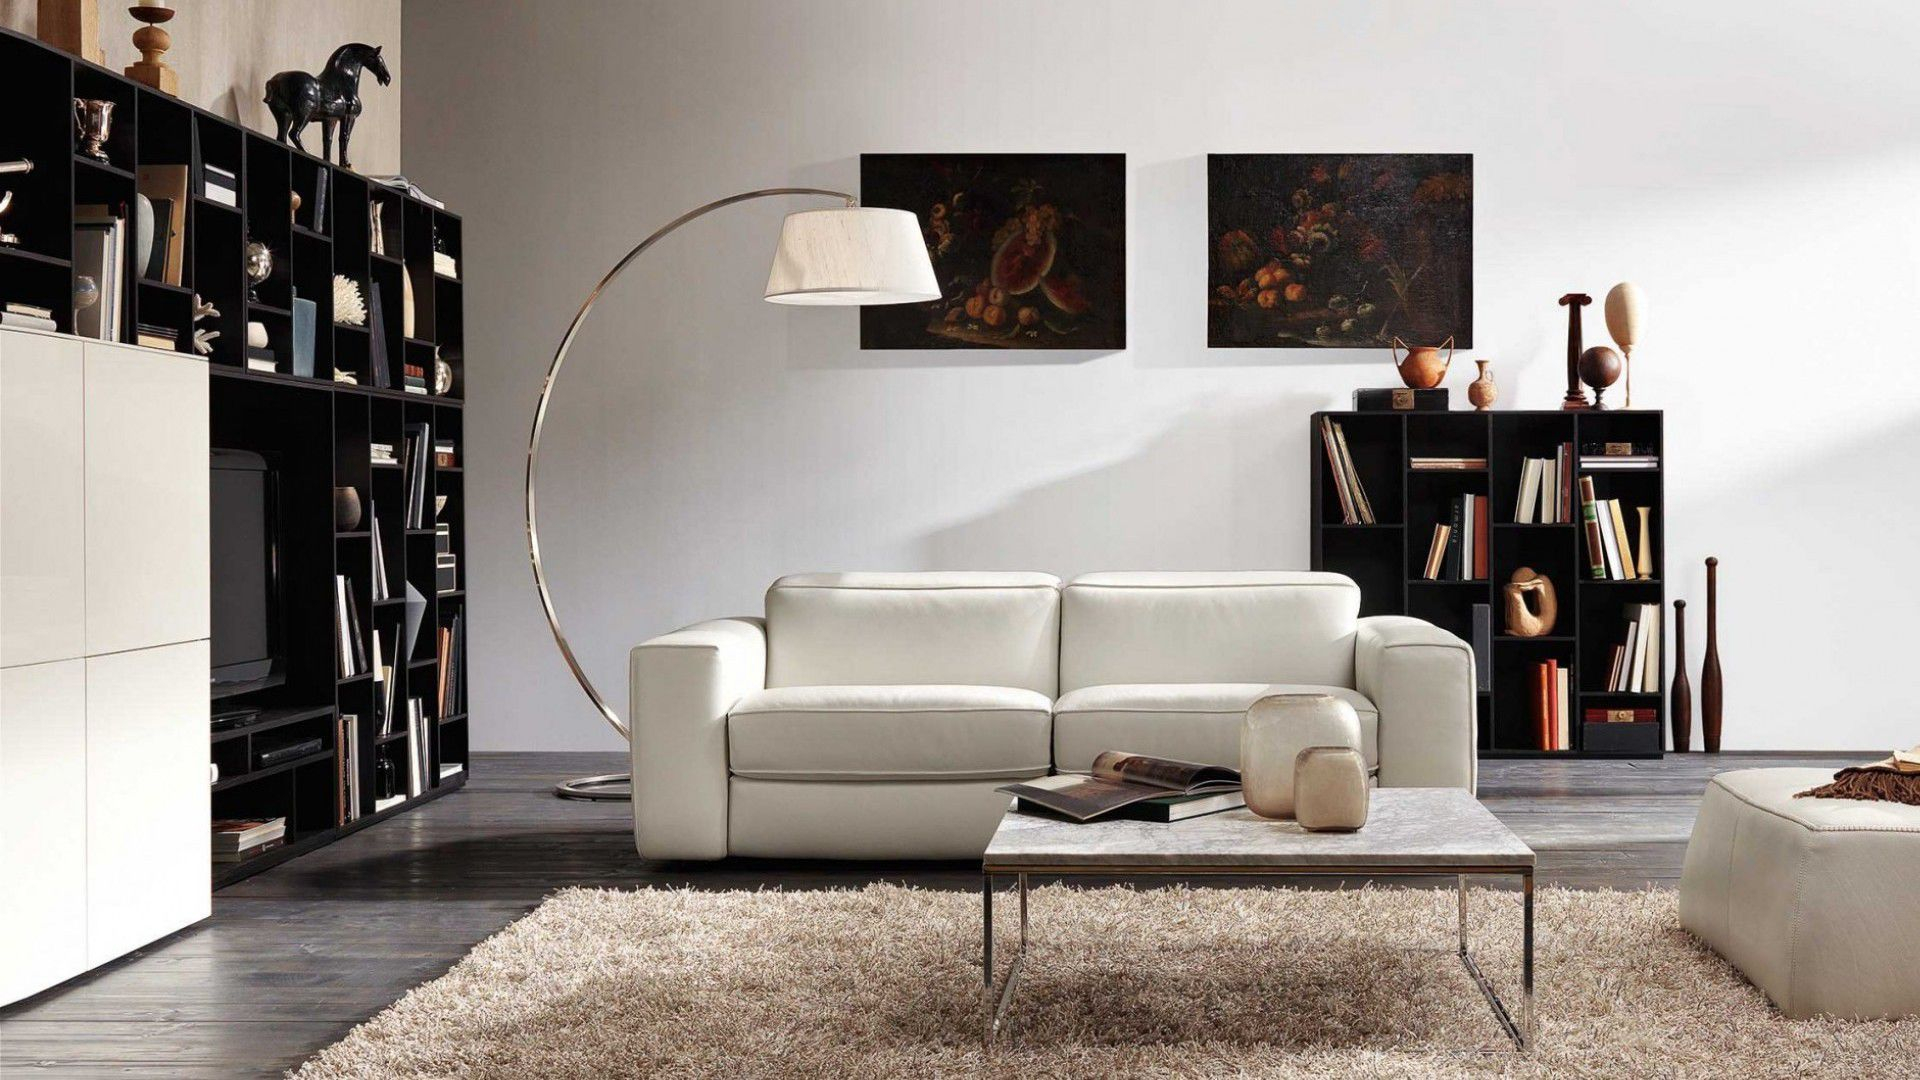 Natuzzi Arc Floor Lamp Deck Storage Box Ideas